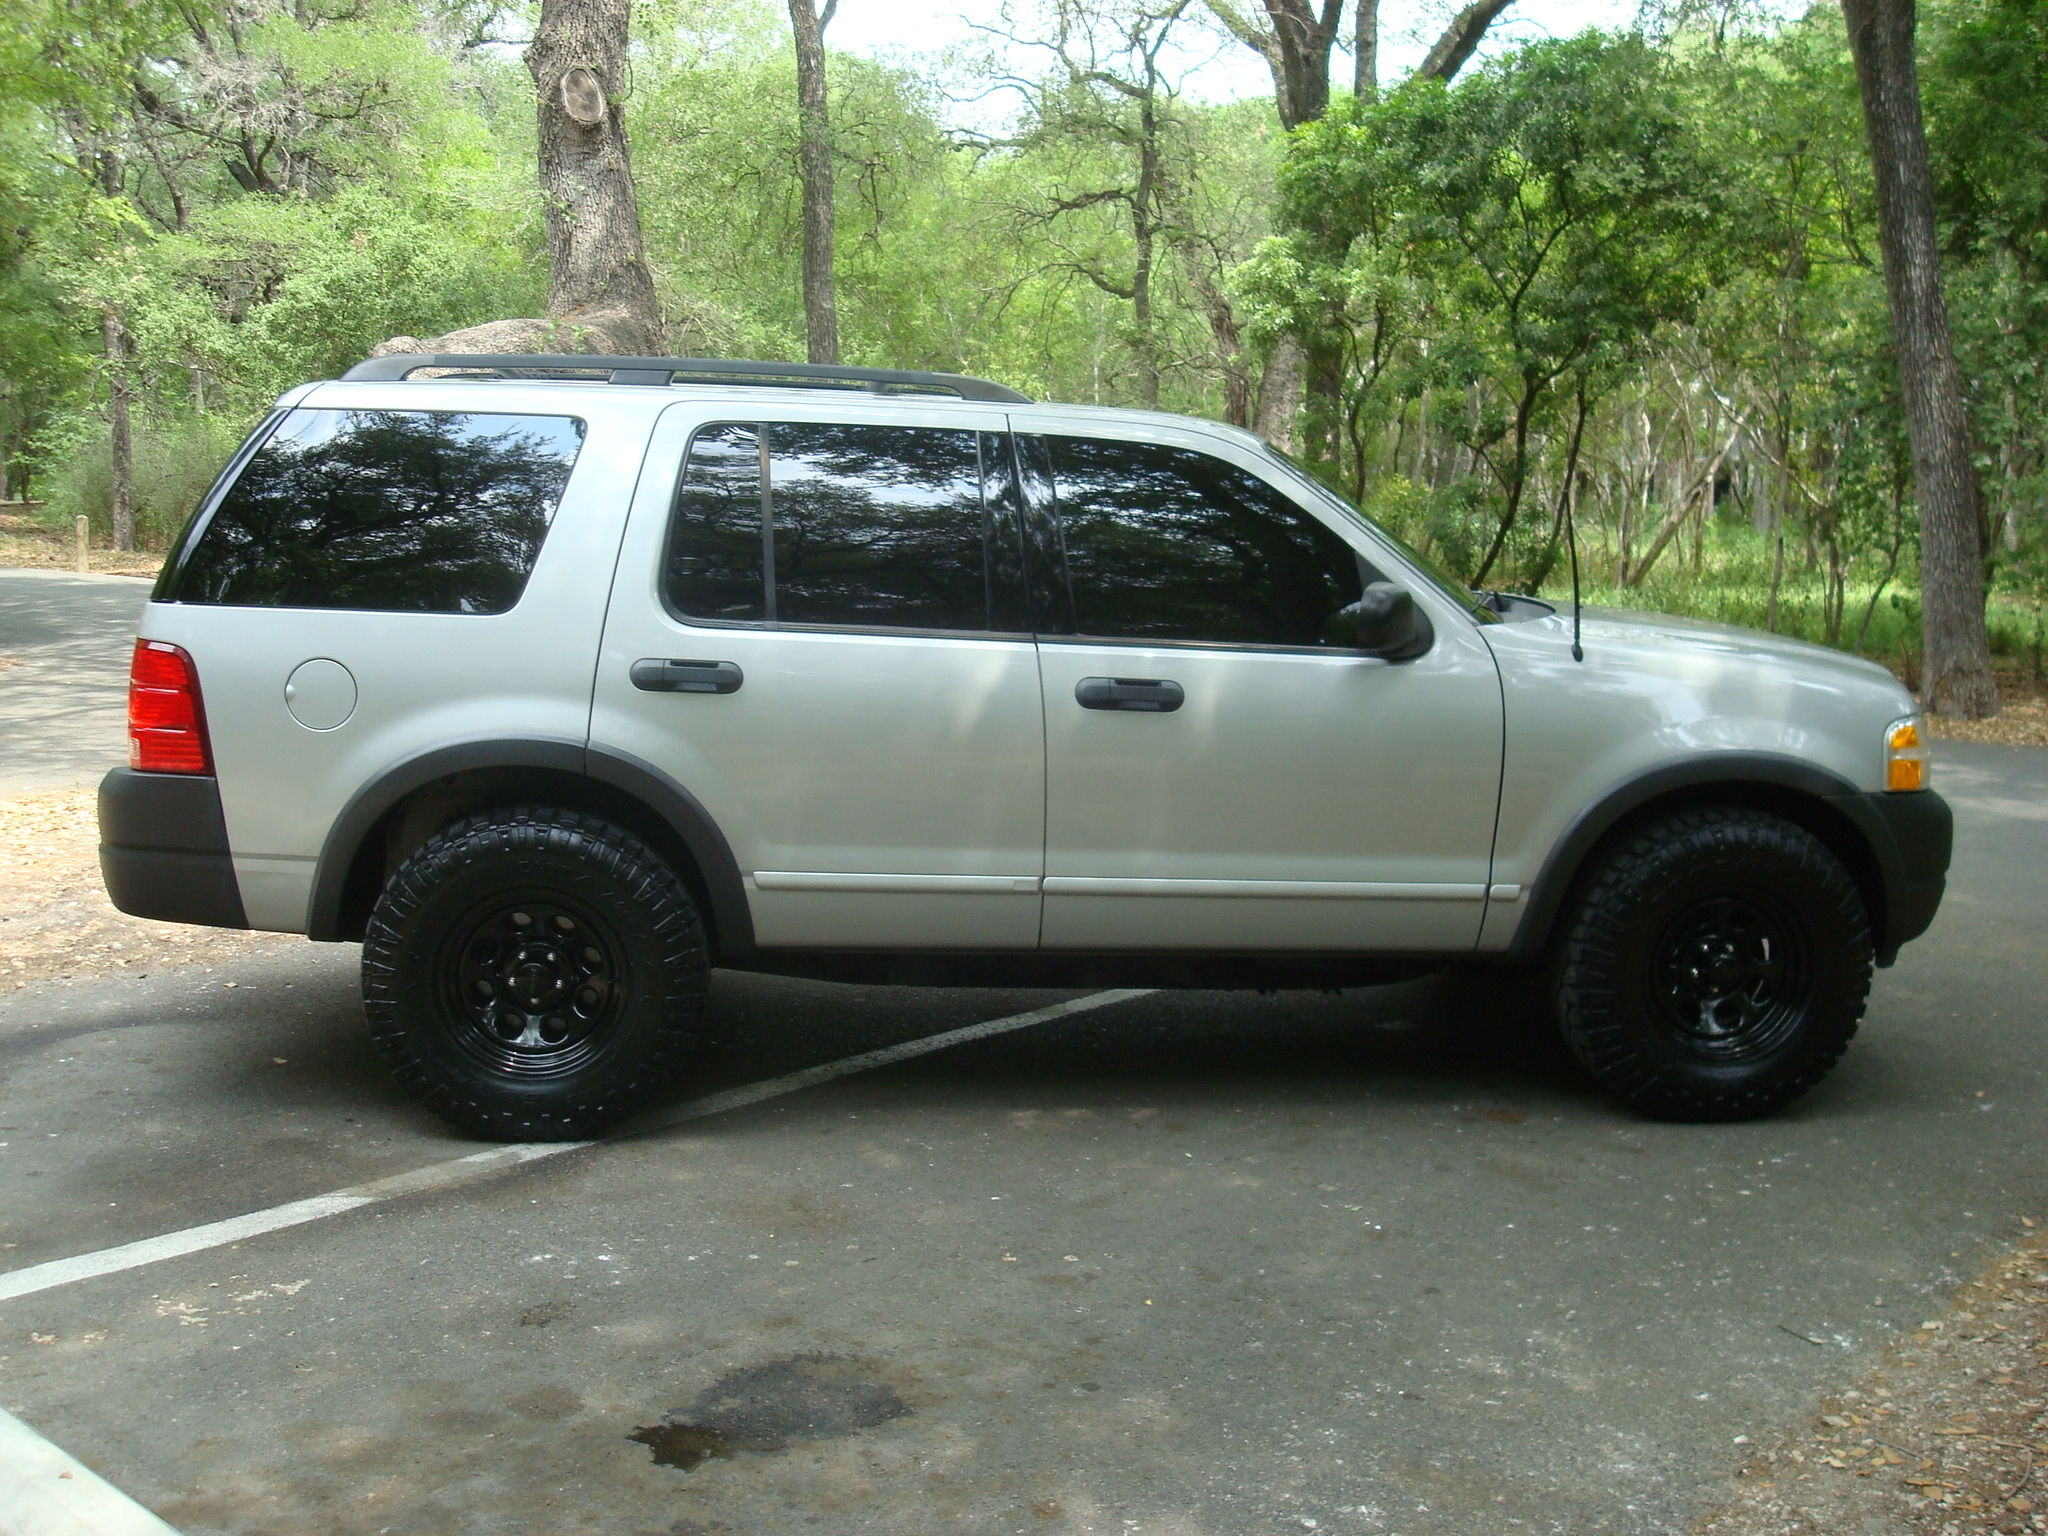 Ford Explorer Sport Black Lifted Finest With Trac Fuel Filter Awesome Another Post